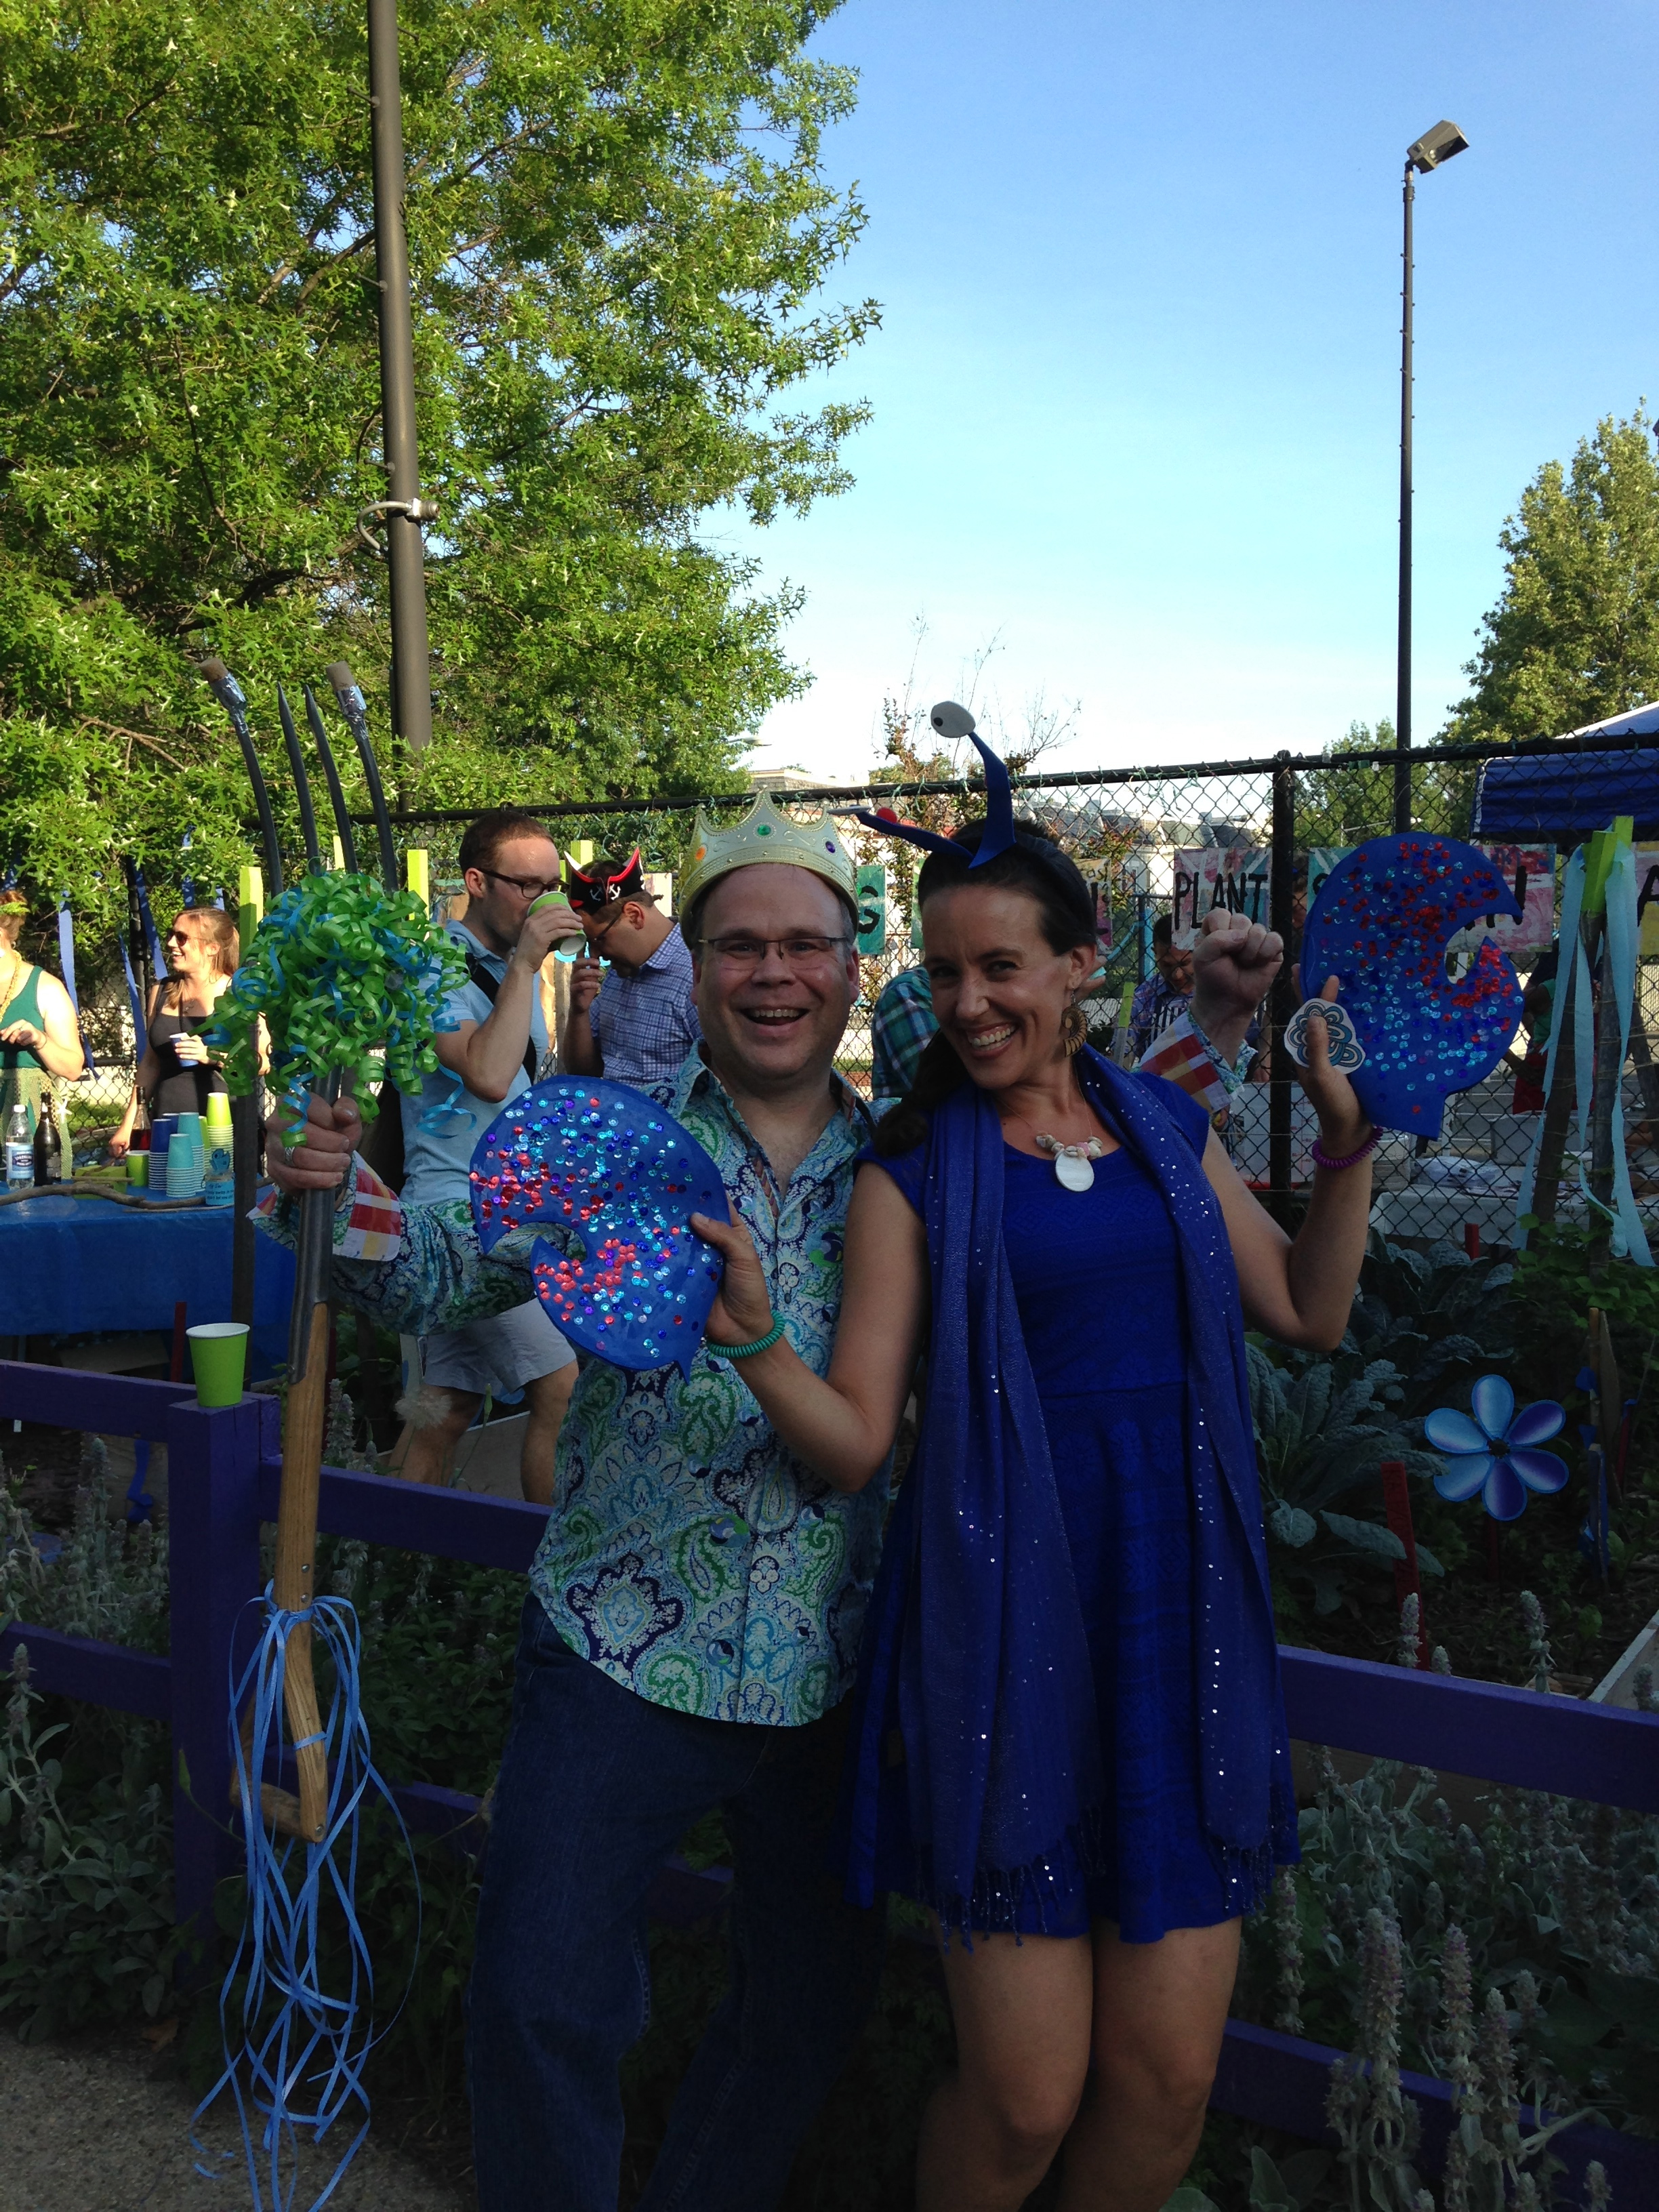 City Blossoms Board Member Todd Harper and CB Co-Founder and Co-Executive Director Lola Bloom enjoy a moment in the Octopus's Garden